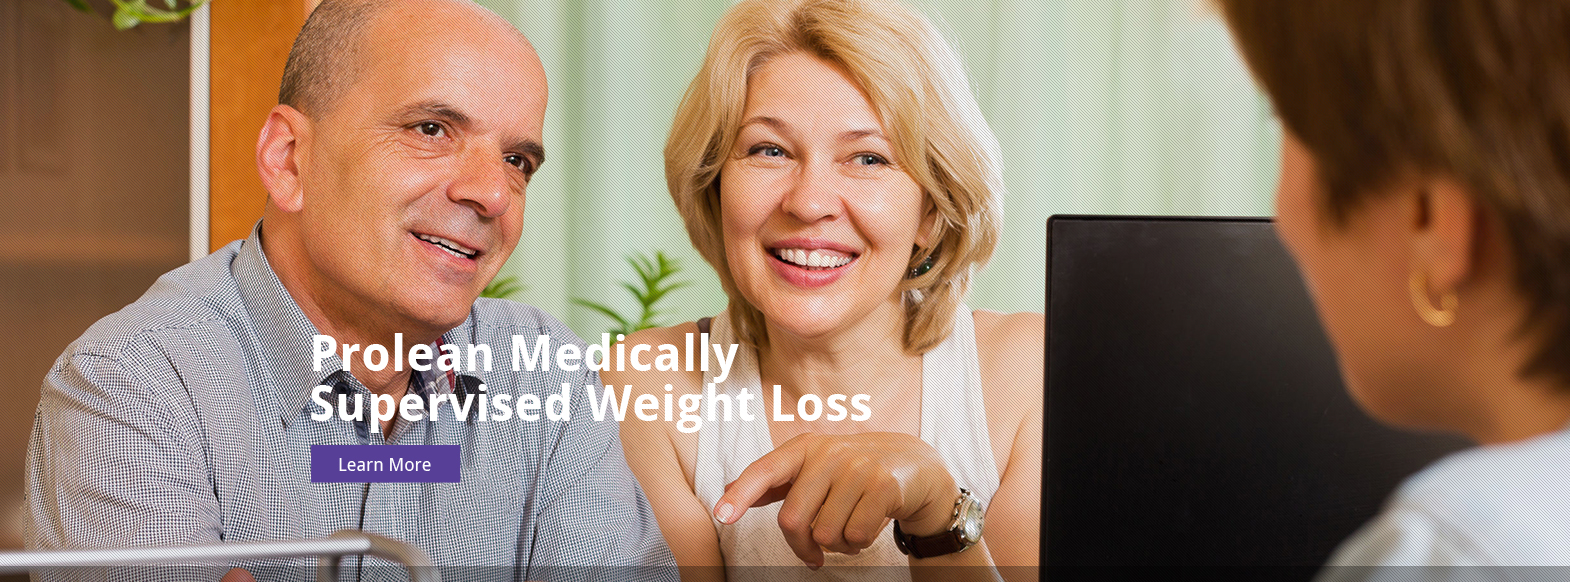 Prolean Medically Supervised Weight Loss